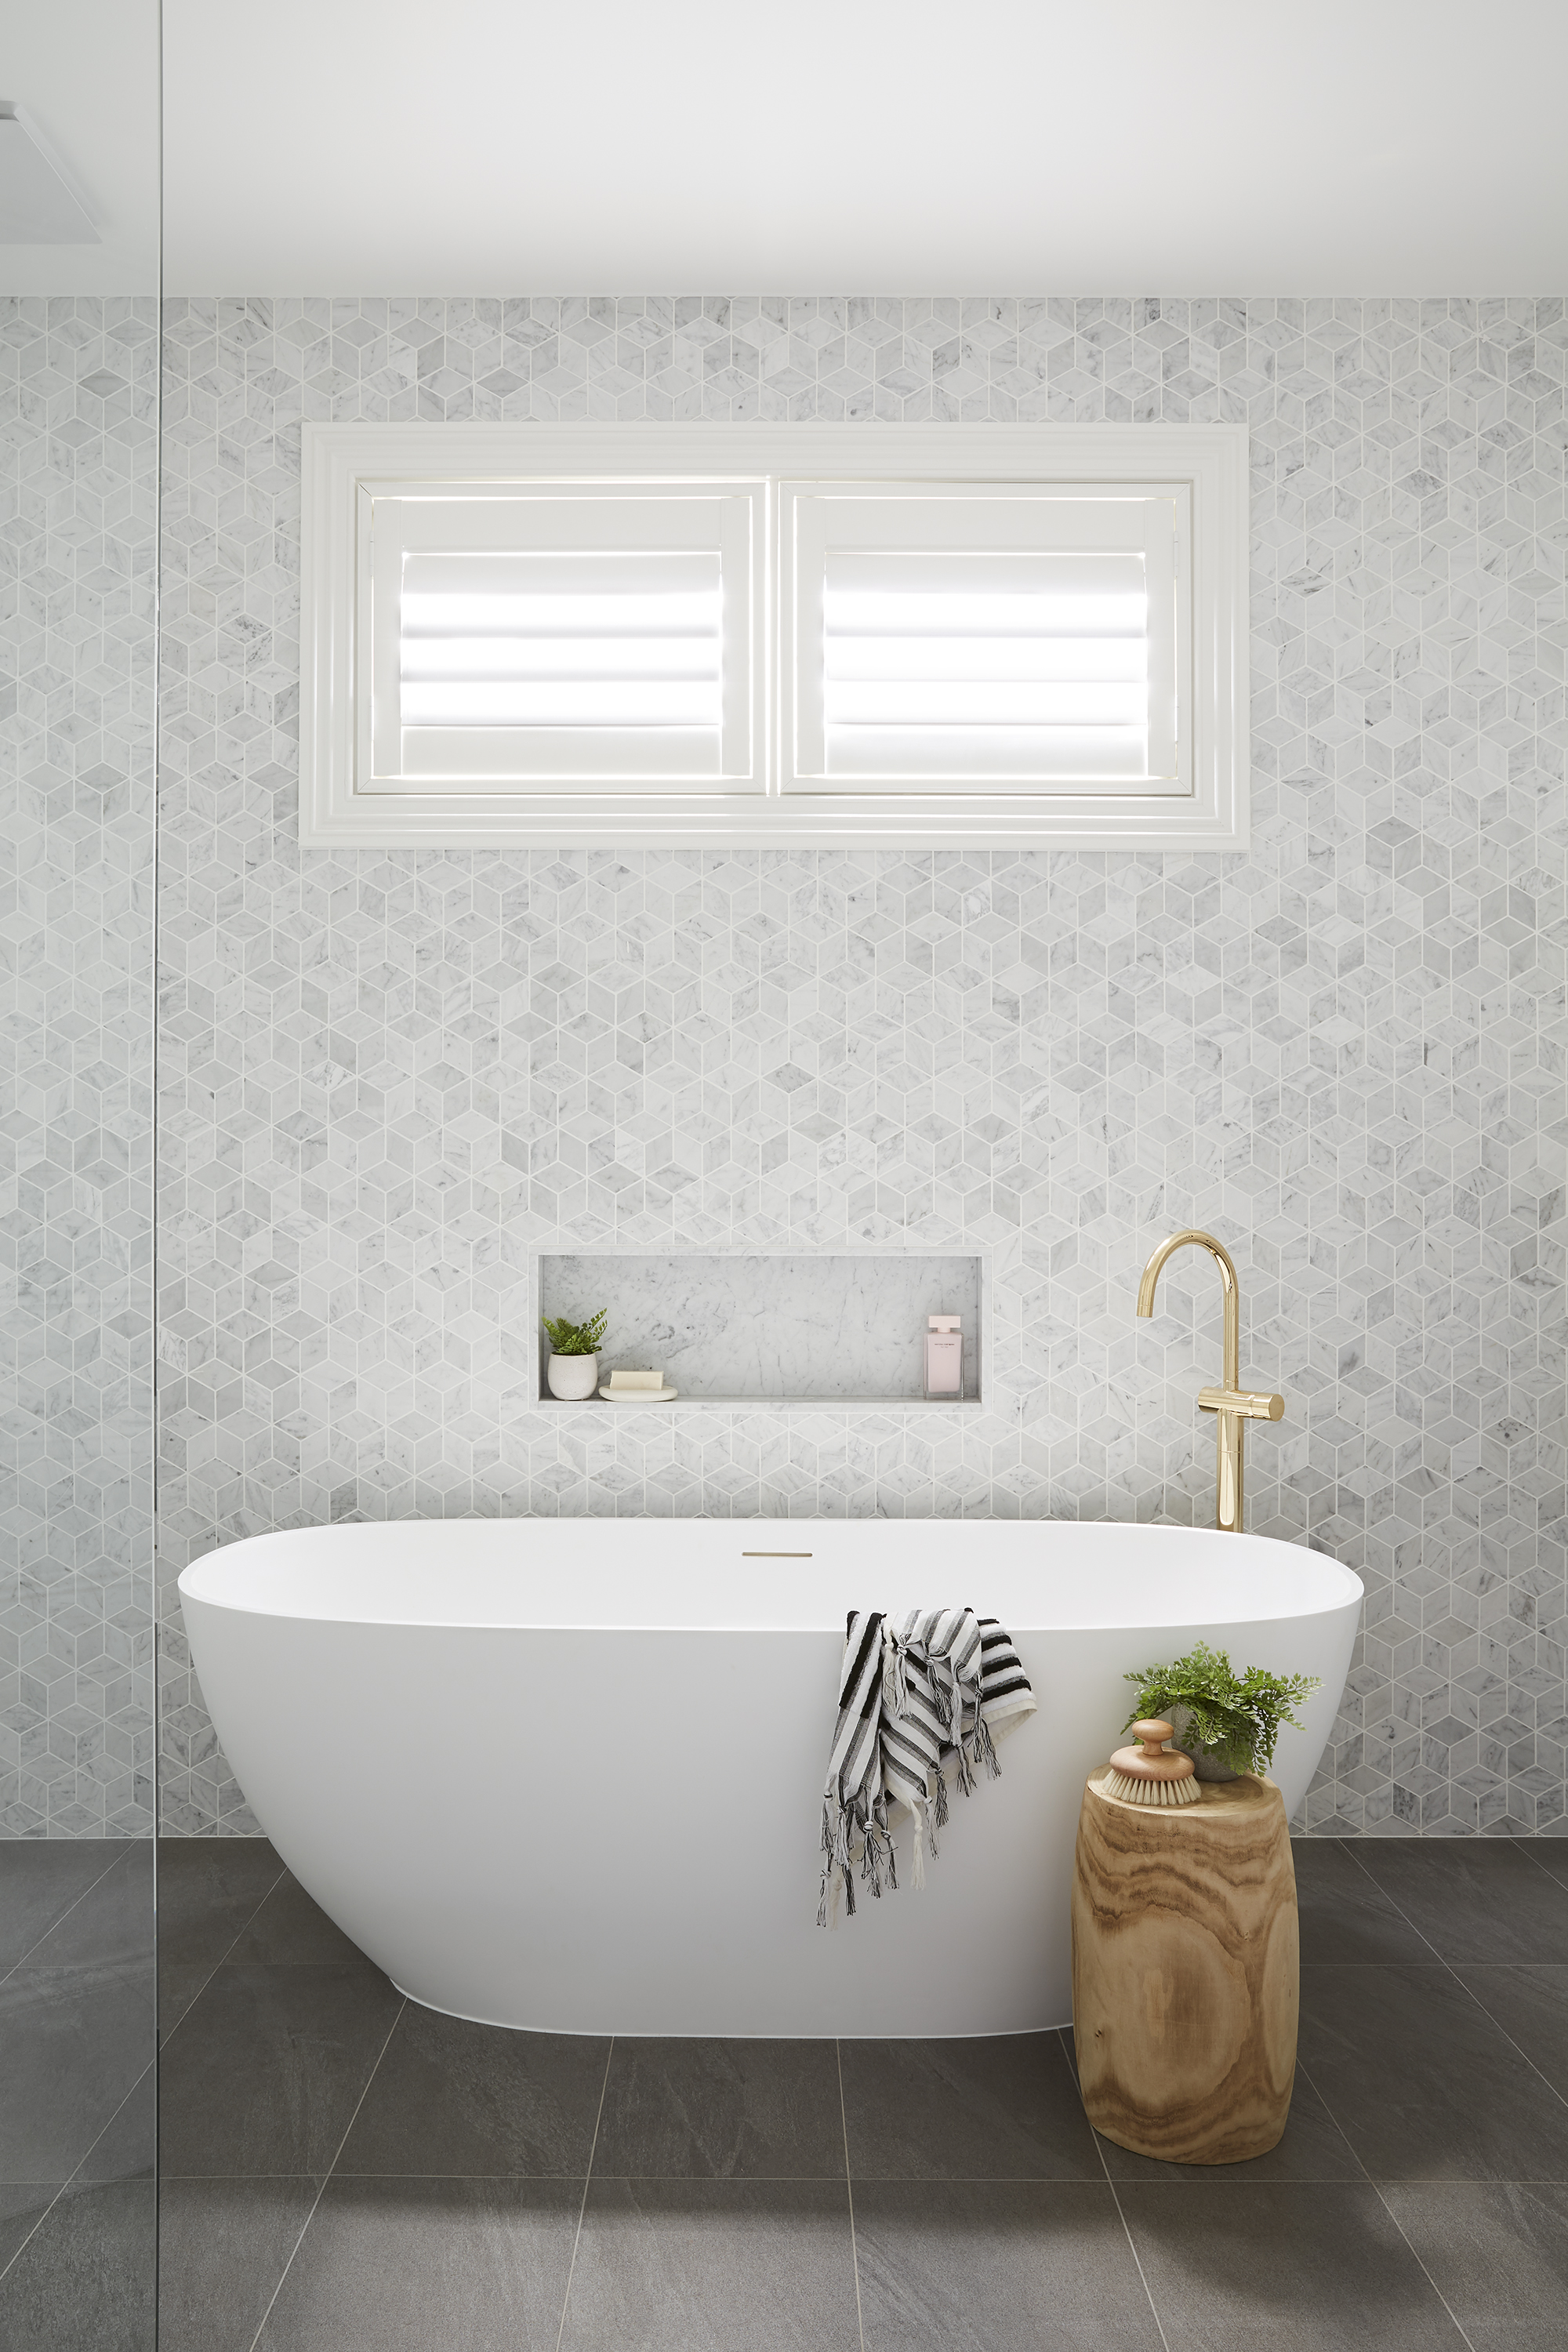 """""""These finishes are quite classic but we modernised them – for example, we've used marble tiles in more contemporary shapes,"""" says Julia.  Tiles from Beaumont Tiles; plantation shutters from DIY Blinds; vanity, Sussex tapware and bath from Reece; towels from Loom Towels."""